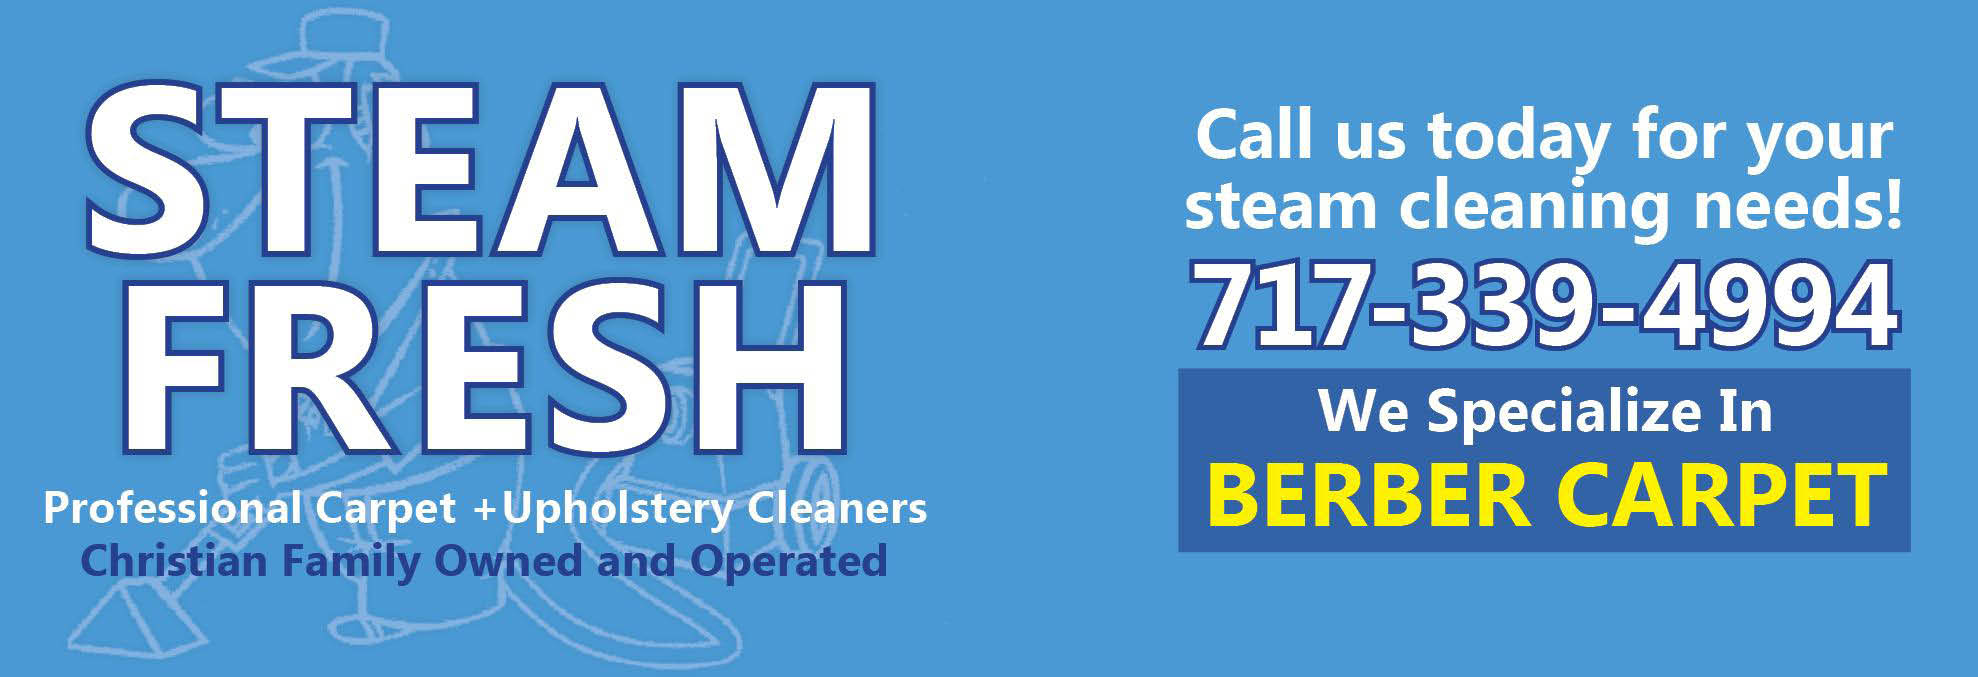 Steam Fresh Carpet Cleaning, Upholstery Cleaning, Rugs, Chairs, Sofa, Pet Odor Removal